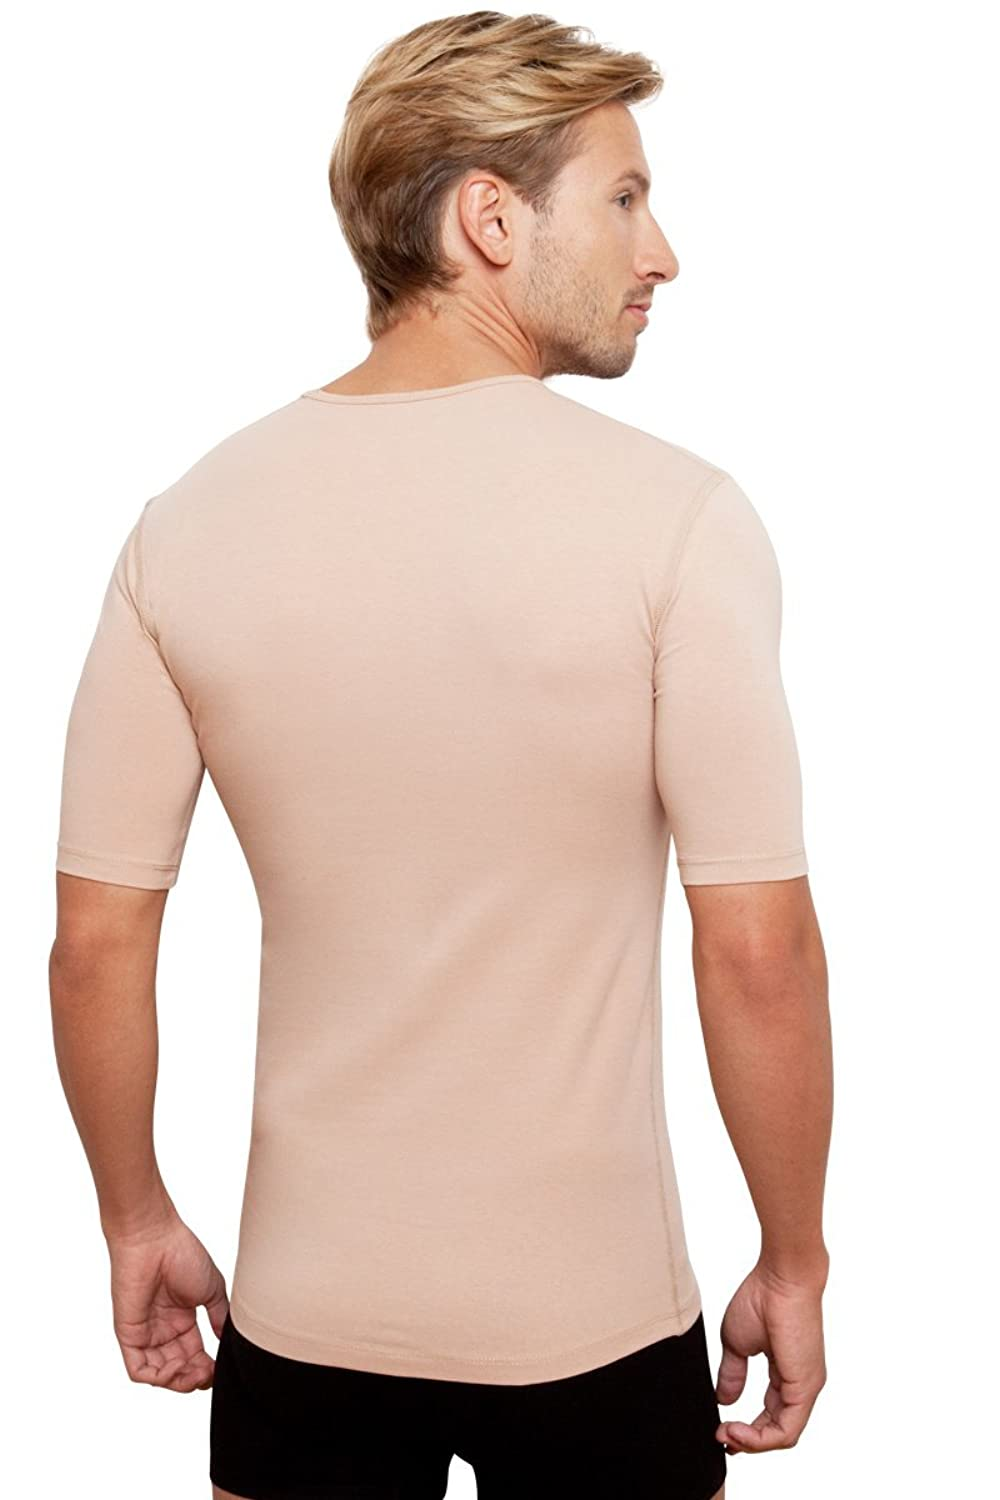 Invisible Crew neck undershirt for men in skin colour (nude)